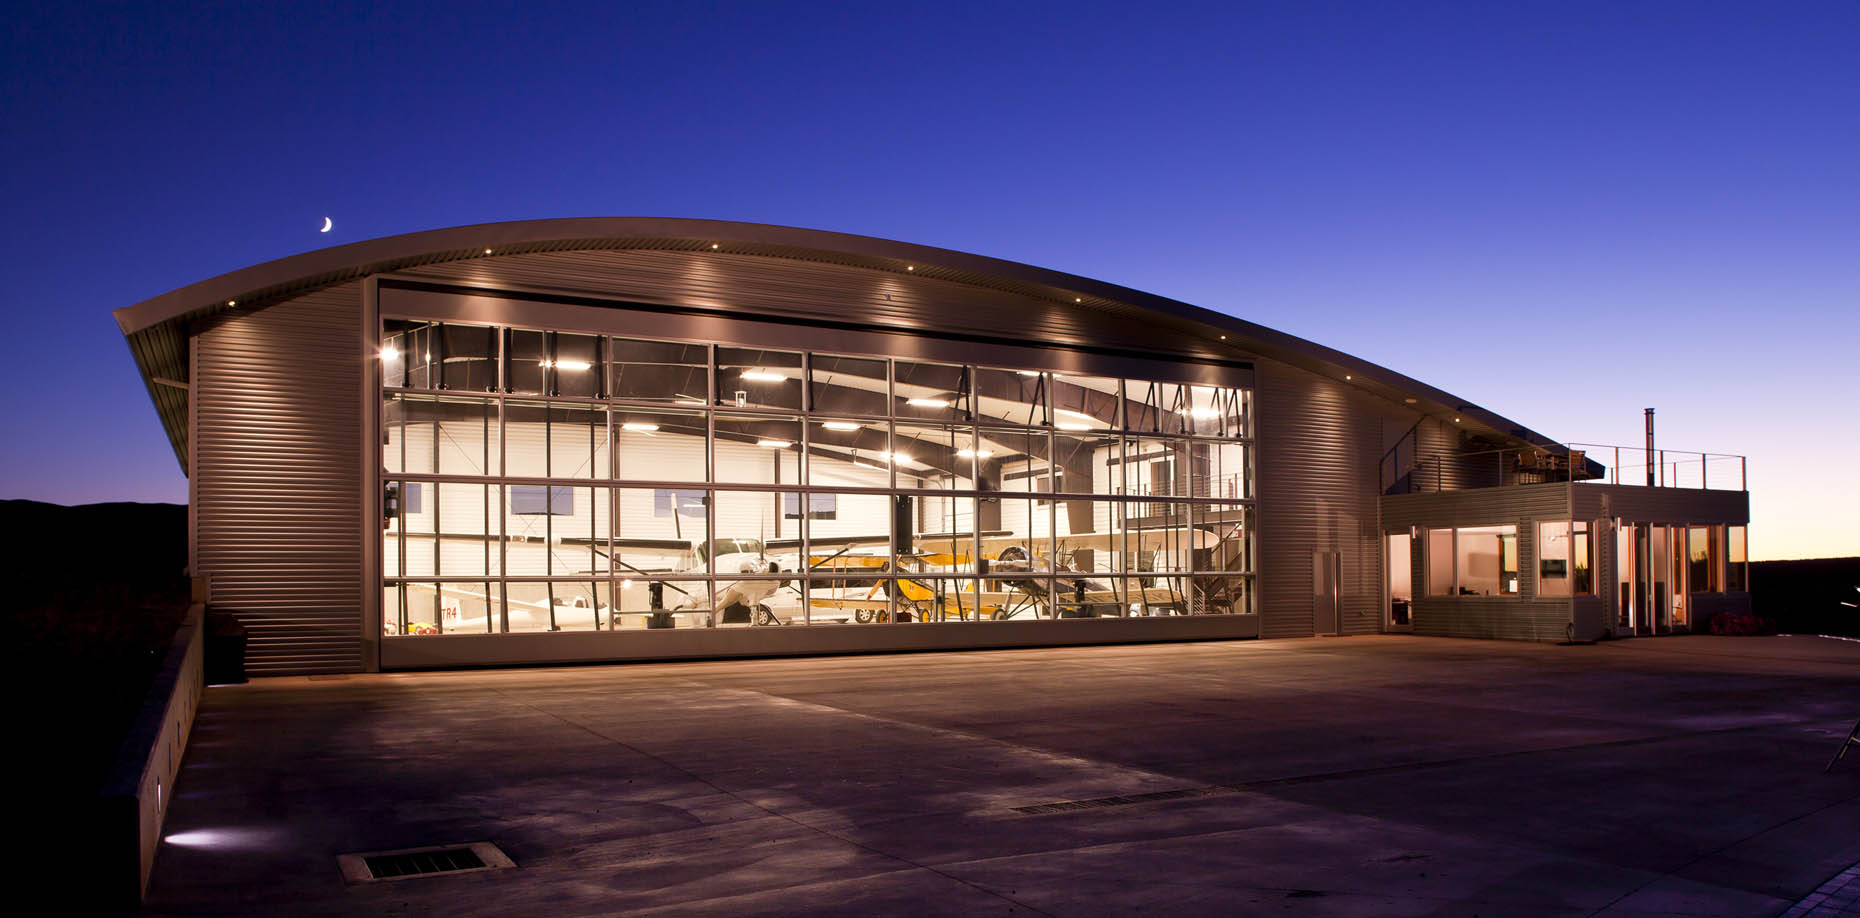 Commercial architecture photography, airplane hangar, Mancos, Colorado